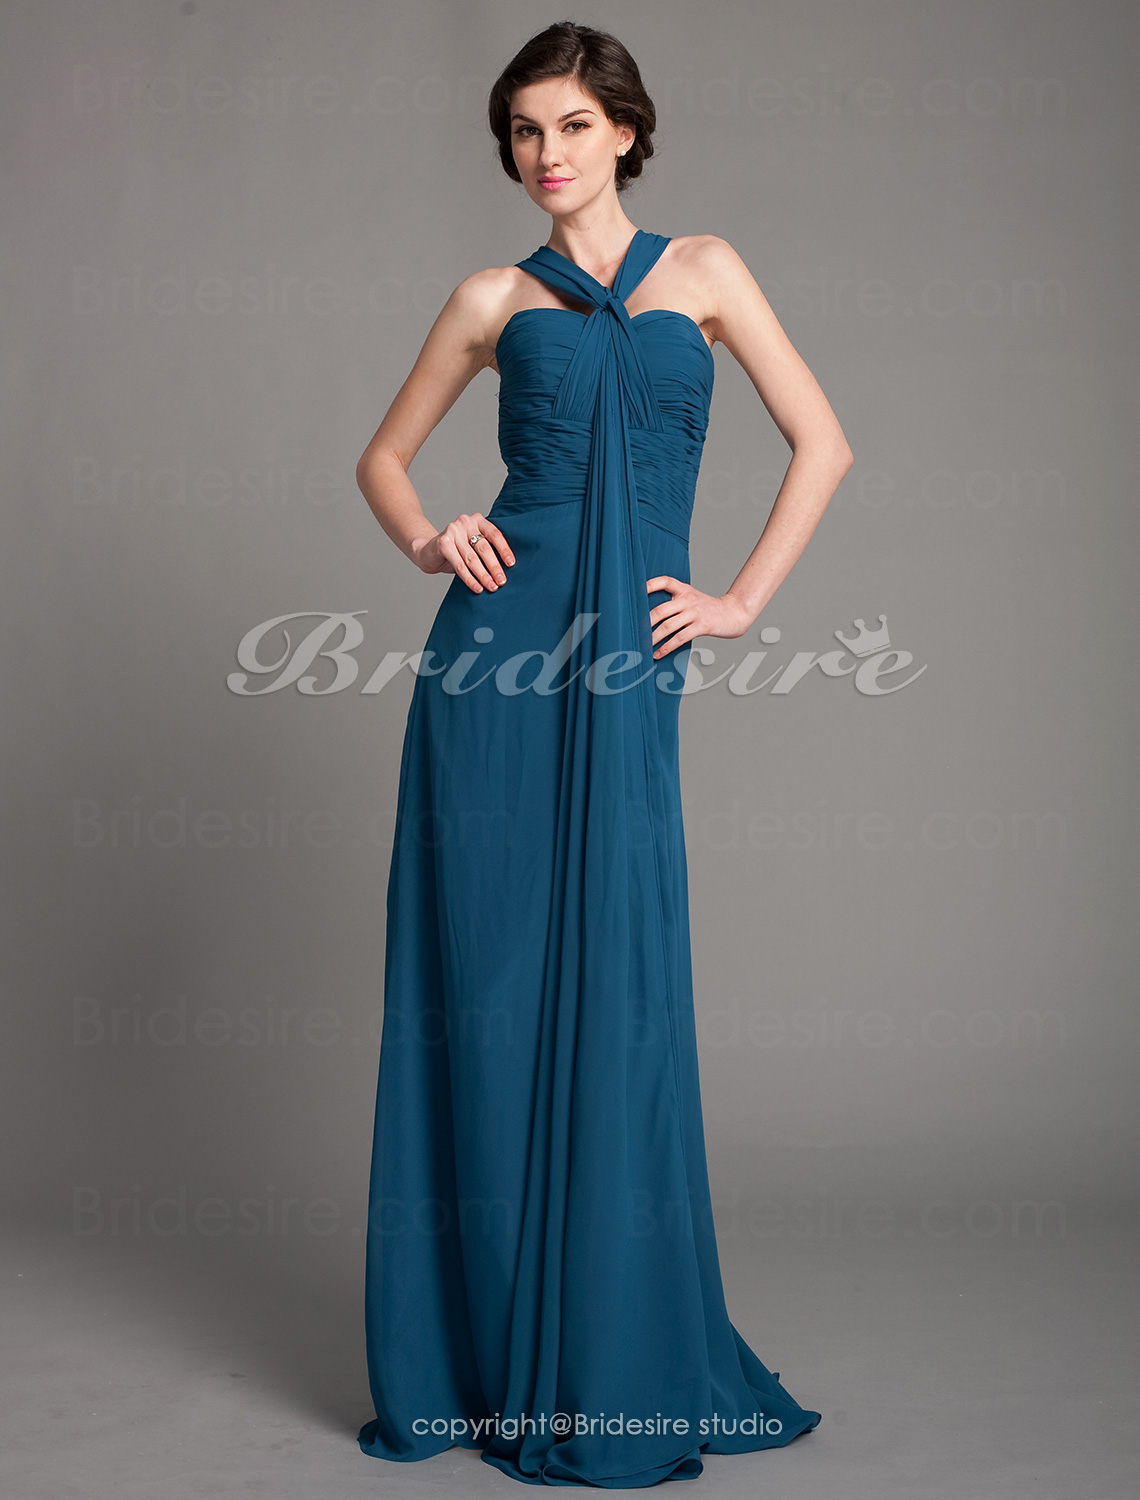 Sheath/Column Chiffon Floor-length Sweetheart Bridesmaid Dress With Ruching